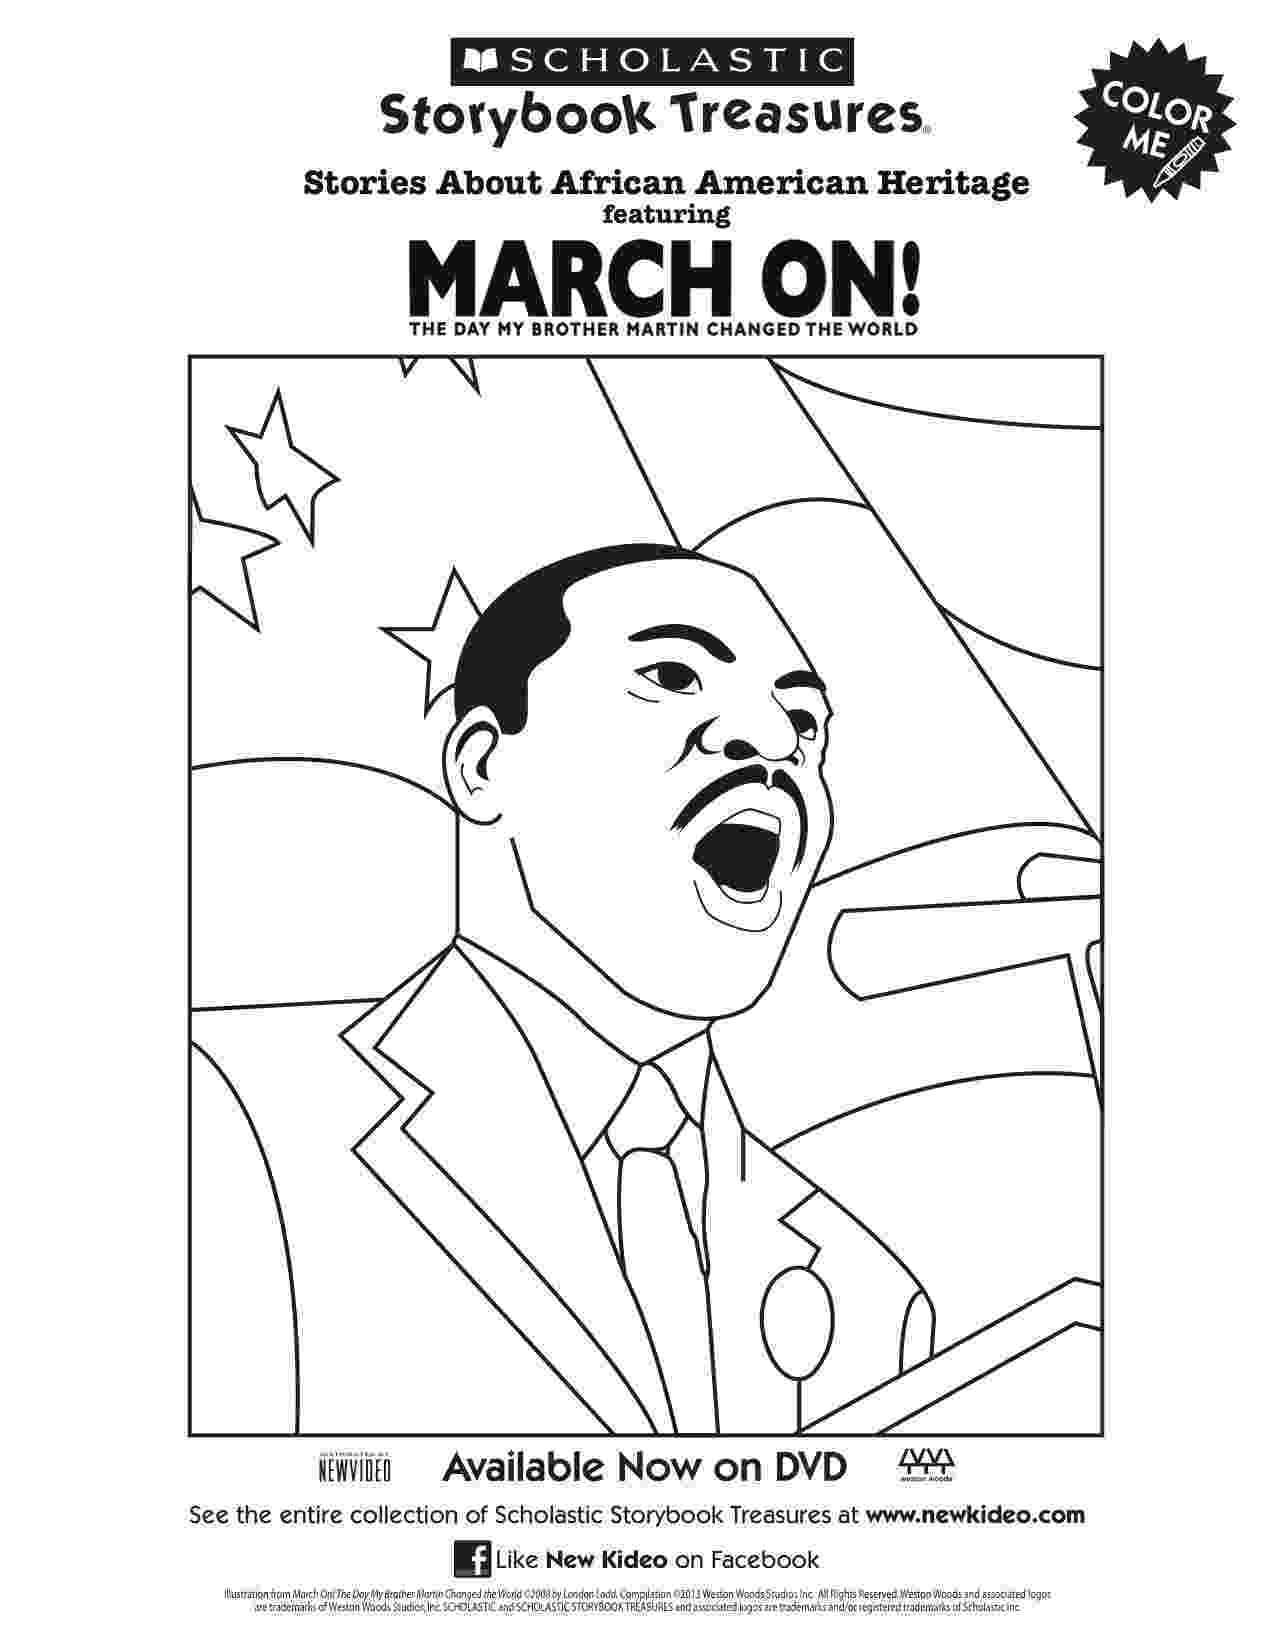 martin luther king coloring sheets free martin luther king jr coloring pages and worksheets best luther free martin king sheets coloring